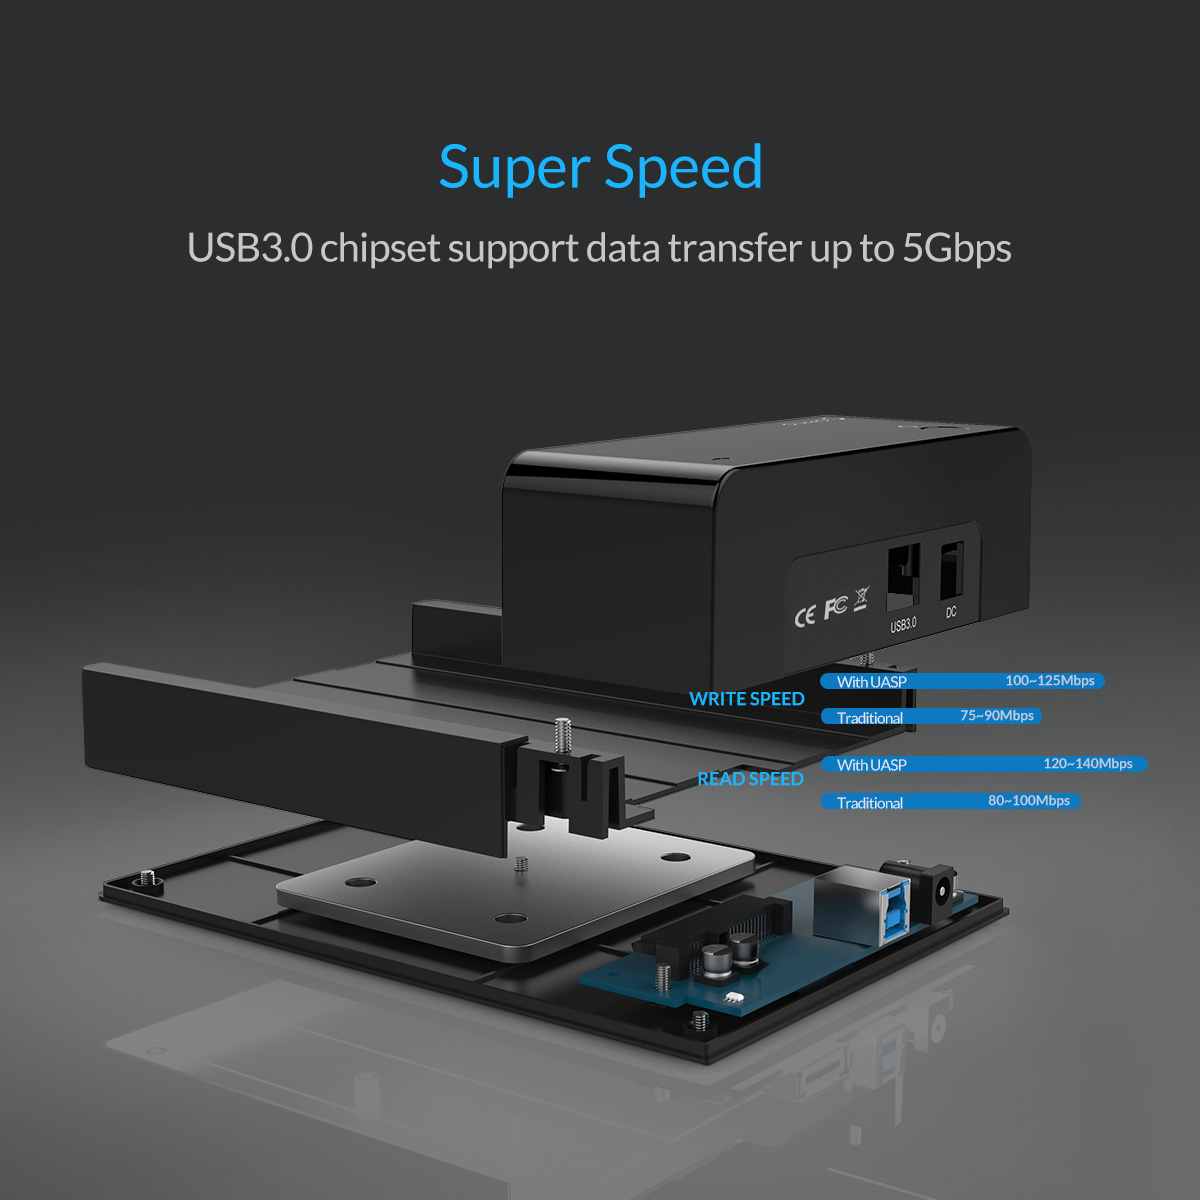 ORICO USB3.0 to SATA 2.5 & 3.5 inch HDD SSD Hard Drive Docking Station Enclosure 115